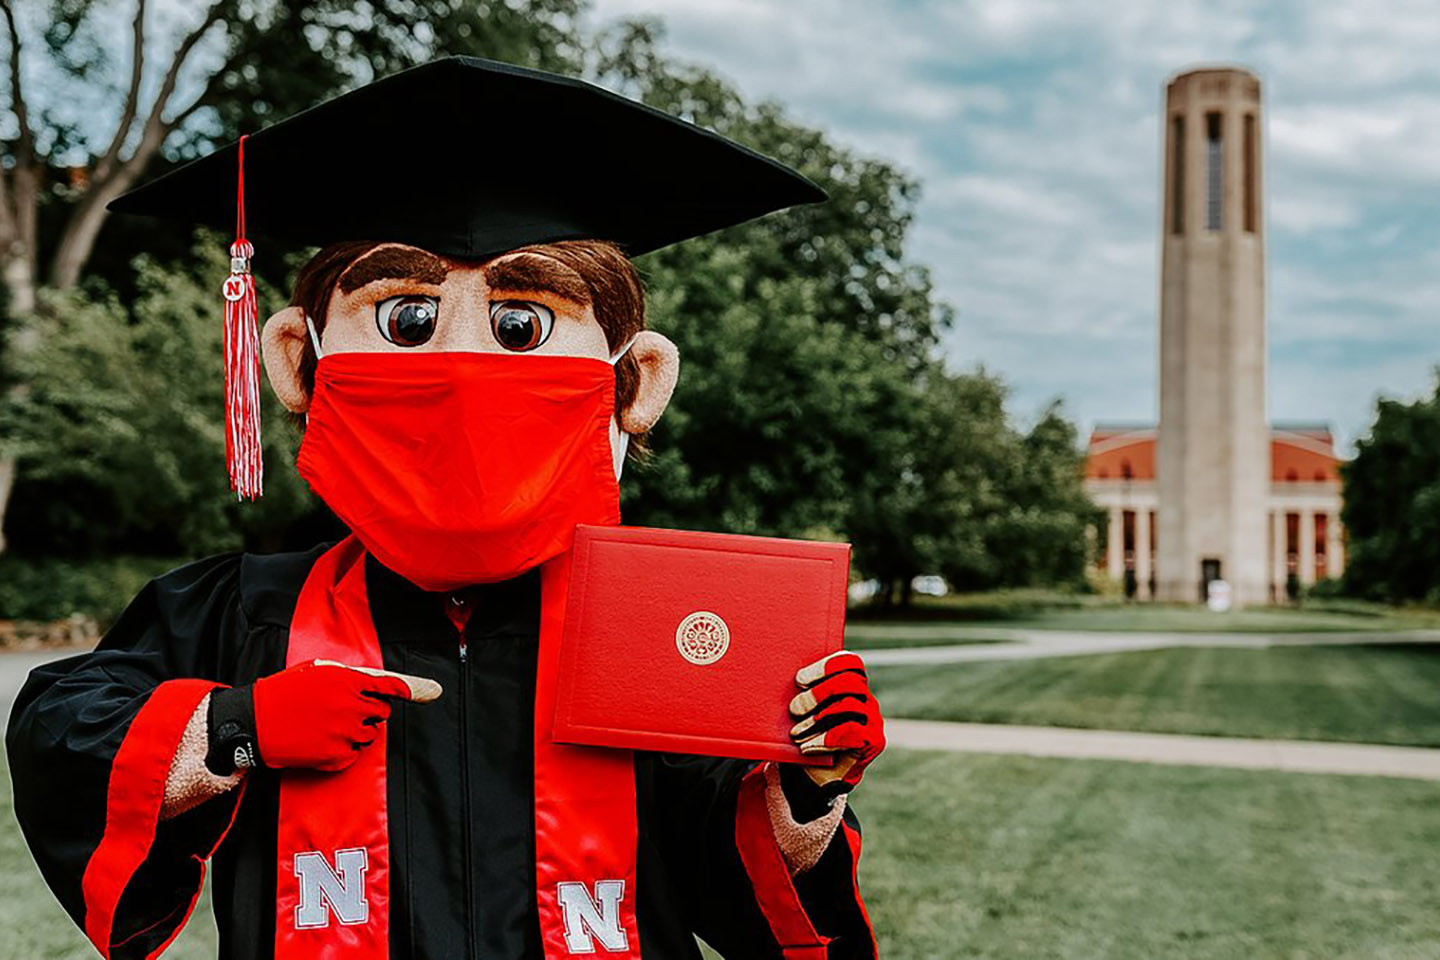 Mascot Herbie Husker with his diploma.